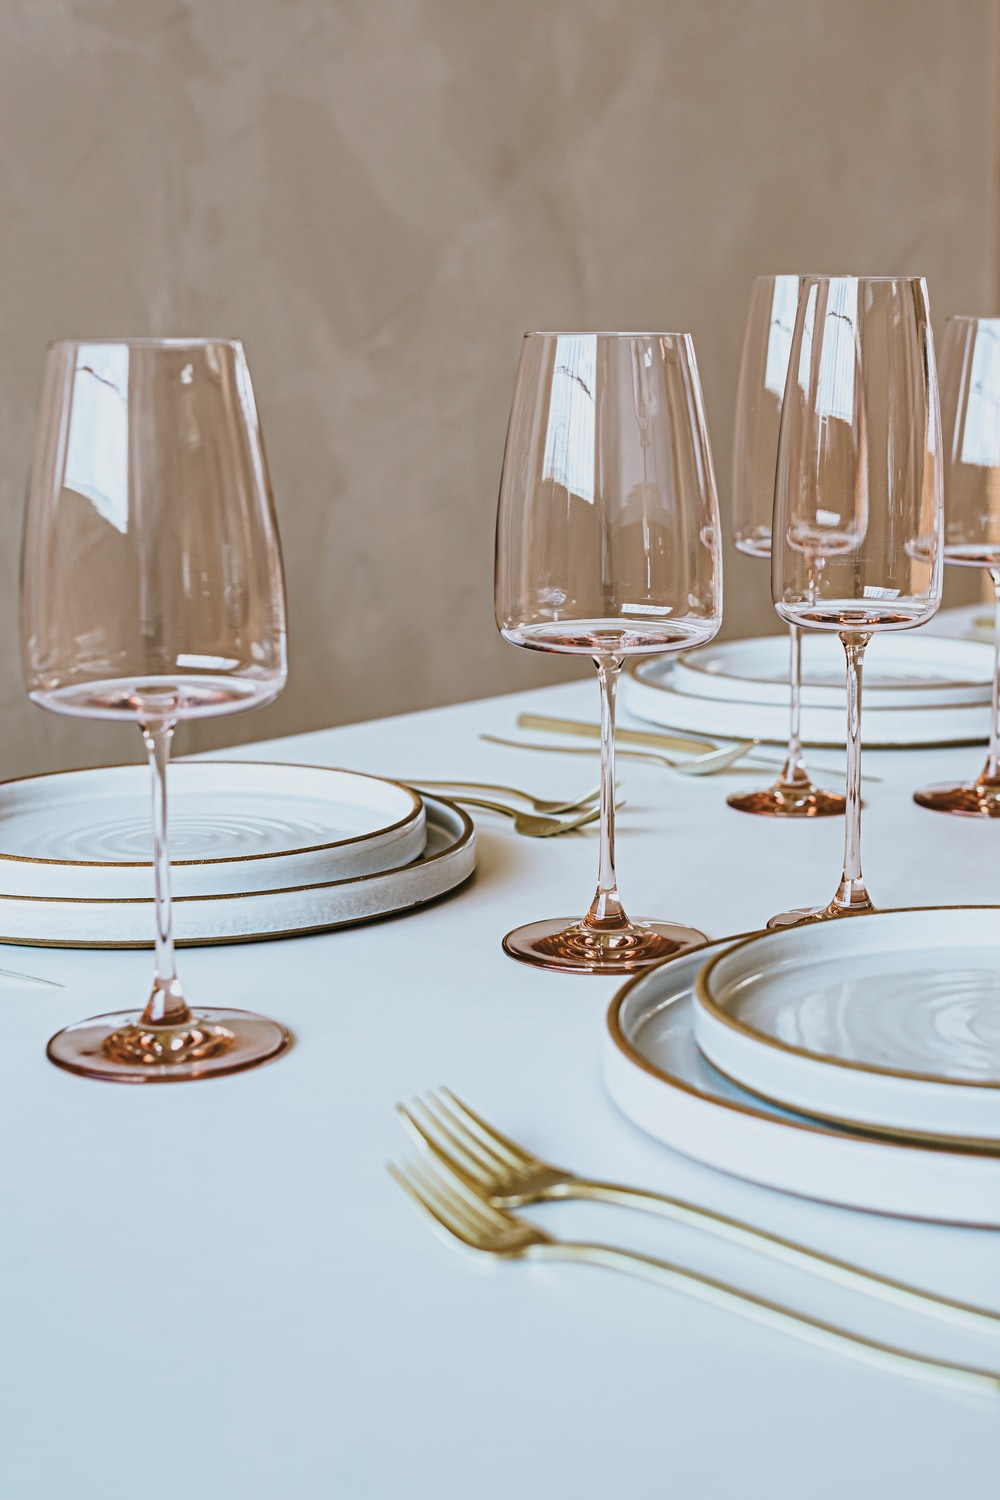 clear wine glasses on white ceramic plate